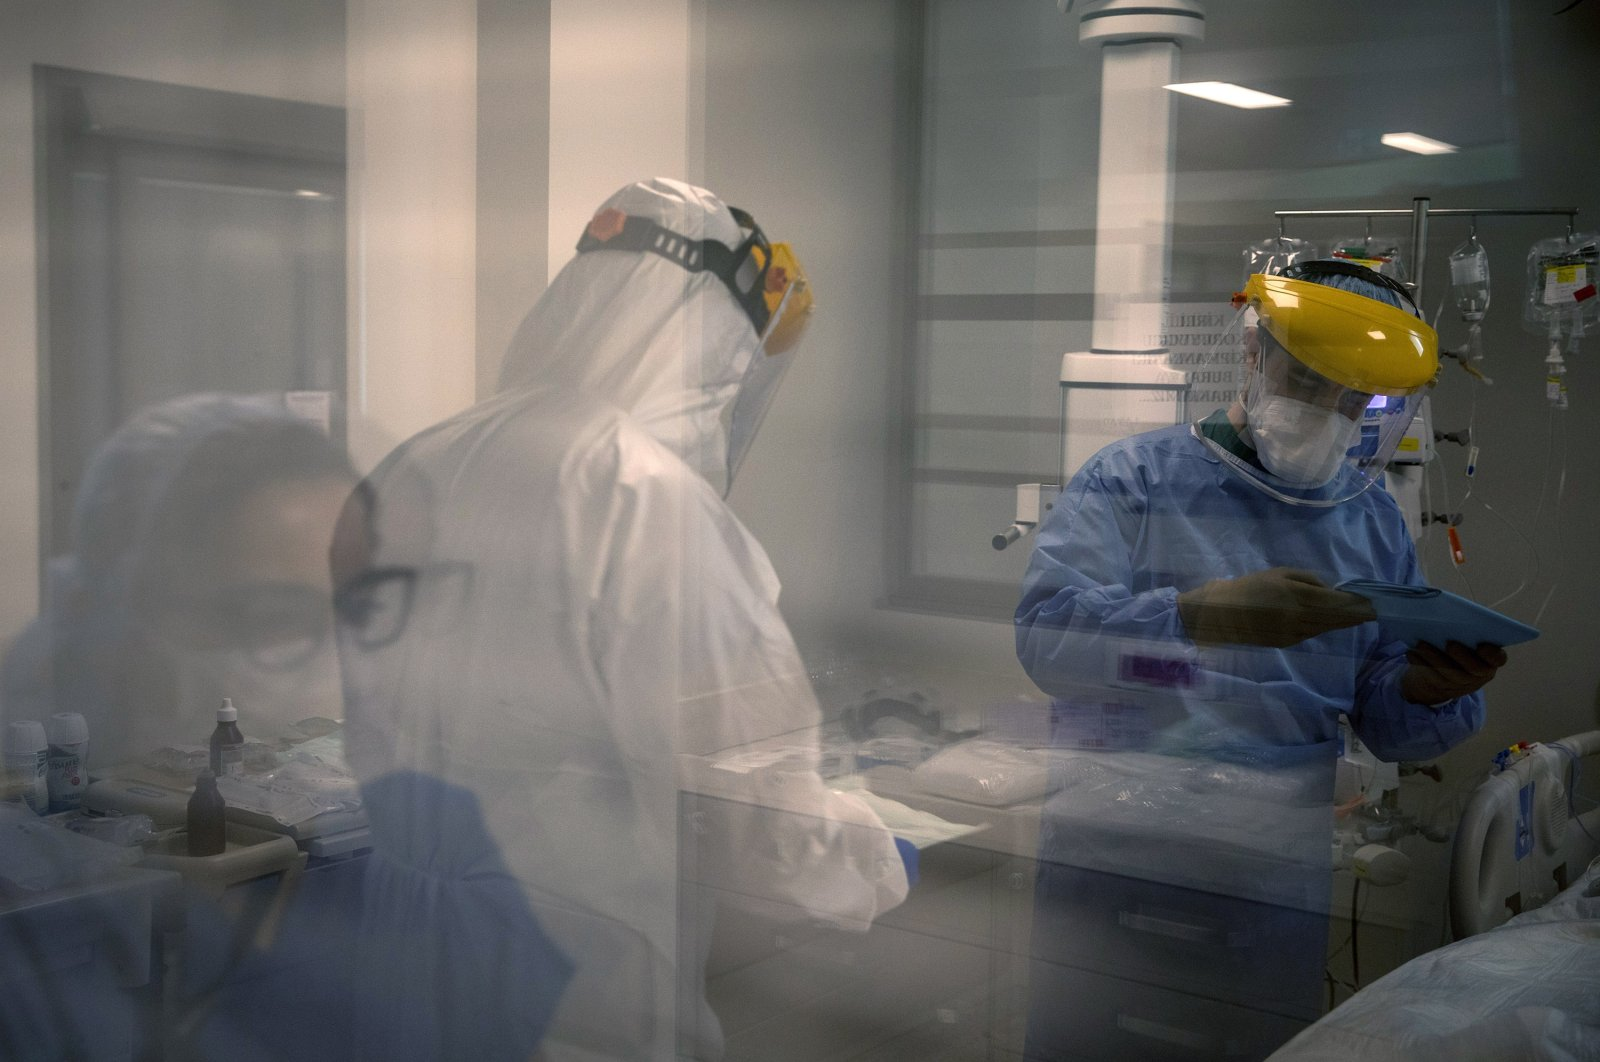 An assistant doctor (R) and nurses prepare to perform a procedure on a patient infected with the coronavirus in the COVID-19 dedicated ICU (Intensive Care Unit) at the Acibadem Altunizade Hospital in Istanbul, Turkey, April 20, 2020. (Getty Images)